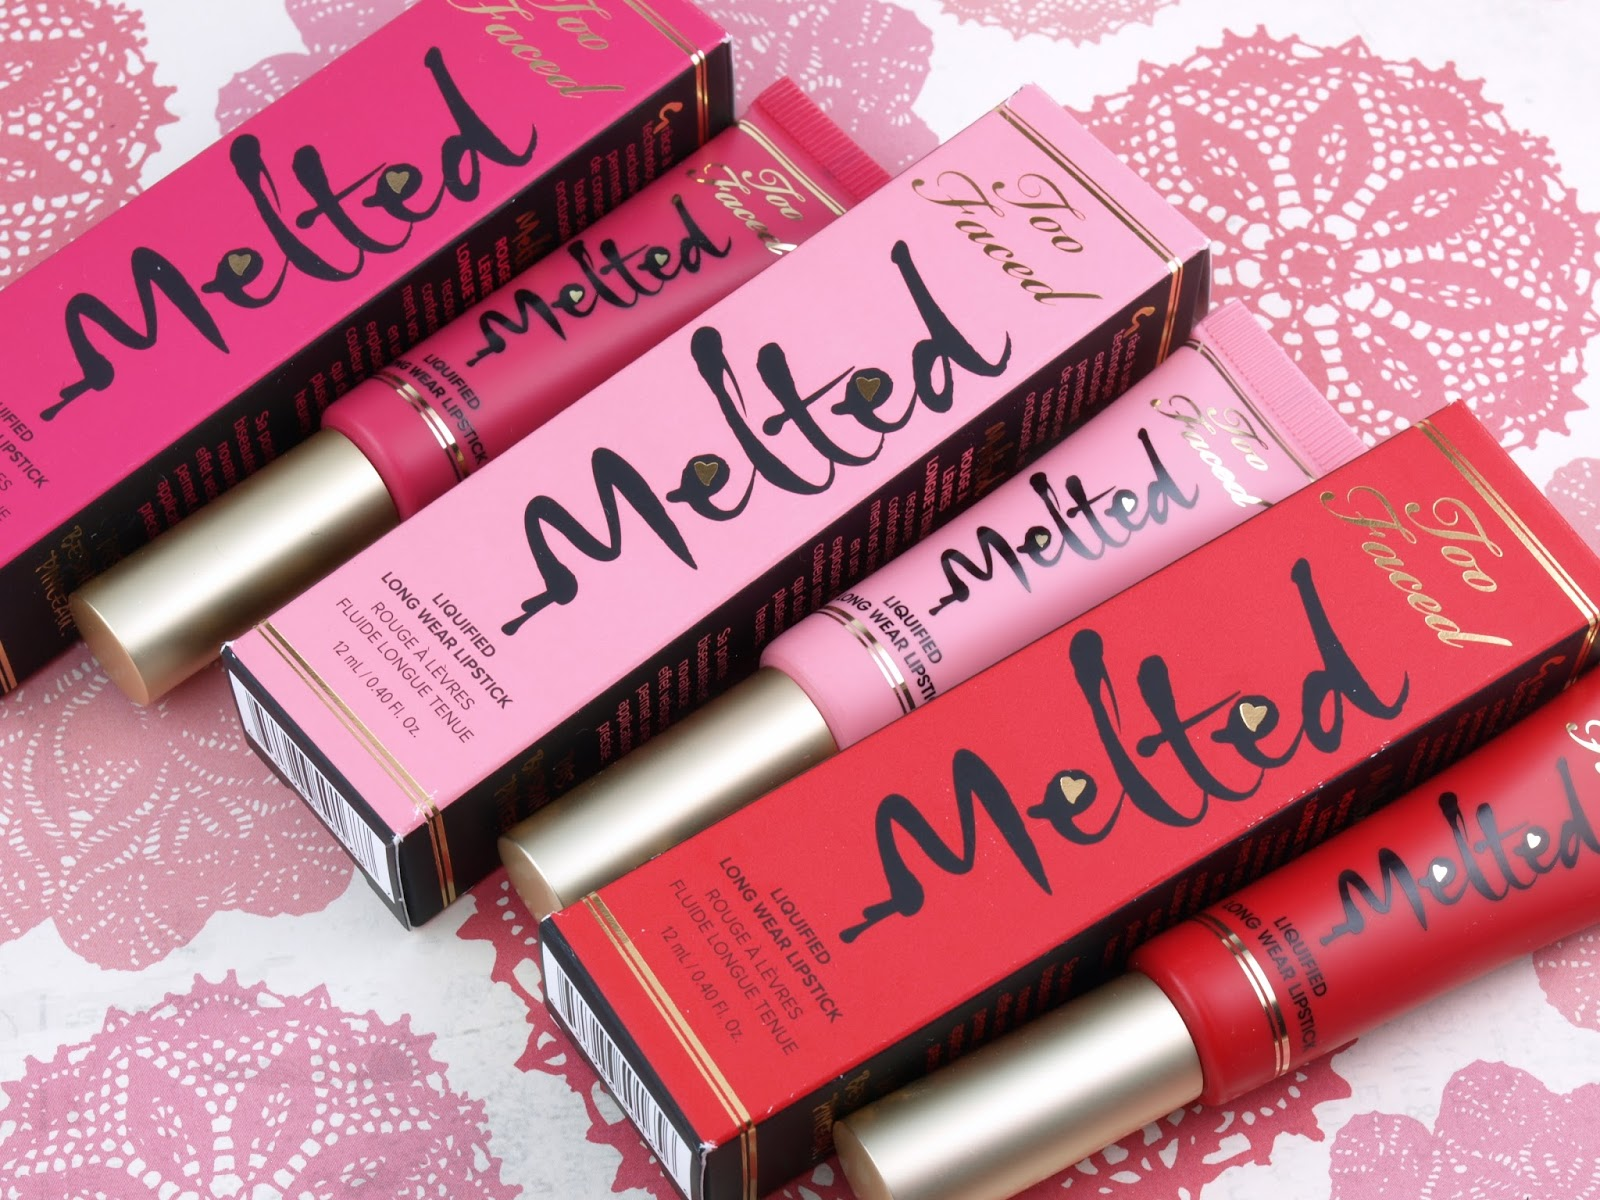 Too Faced Melted Liquified Long Wear Lipstick Animal Friendly Makeup Products-faviana